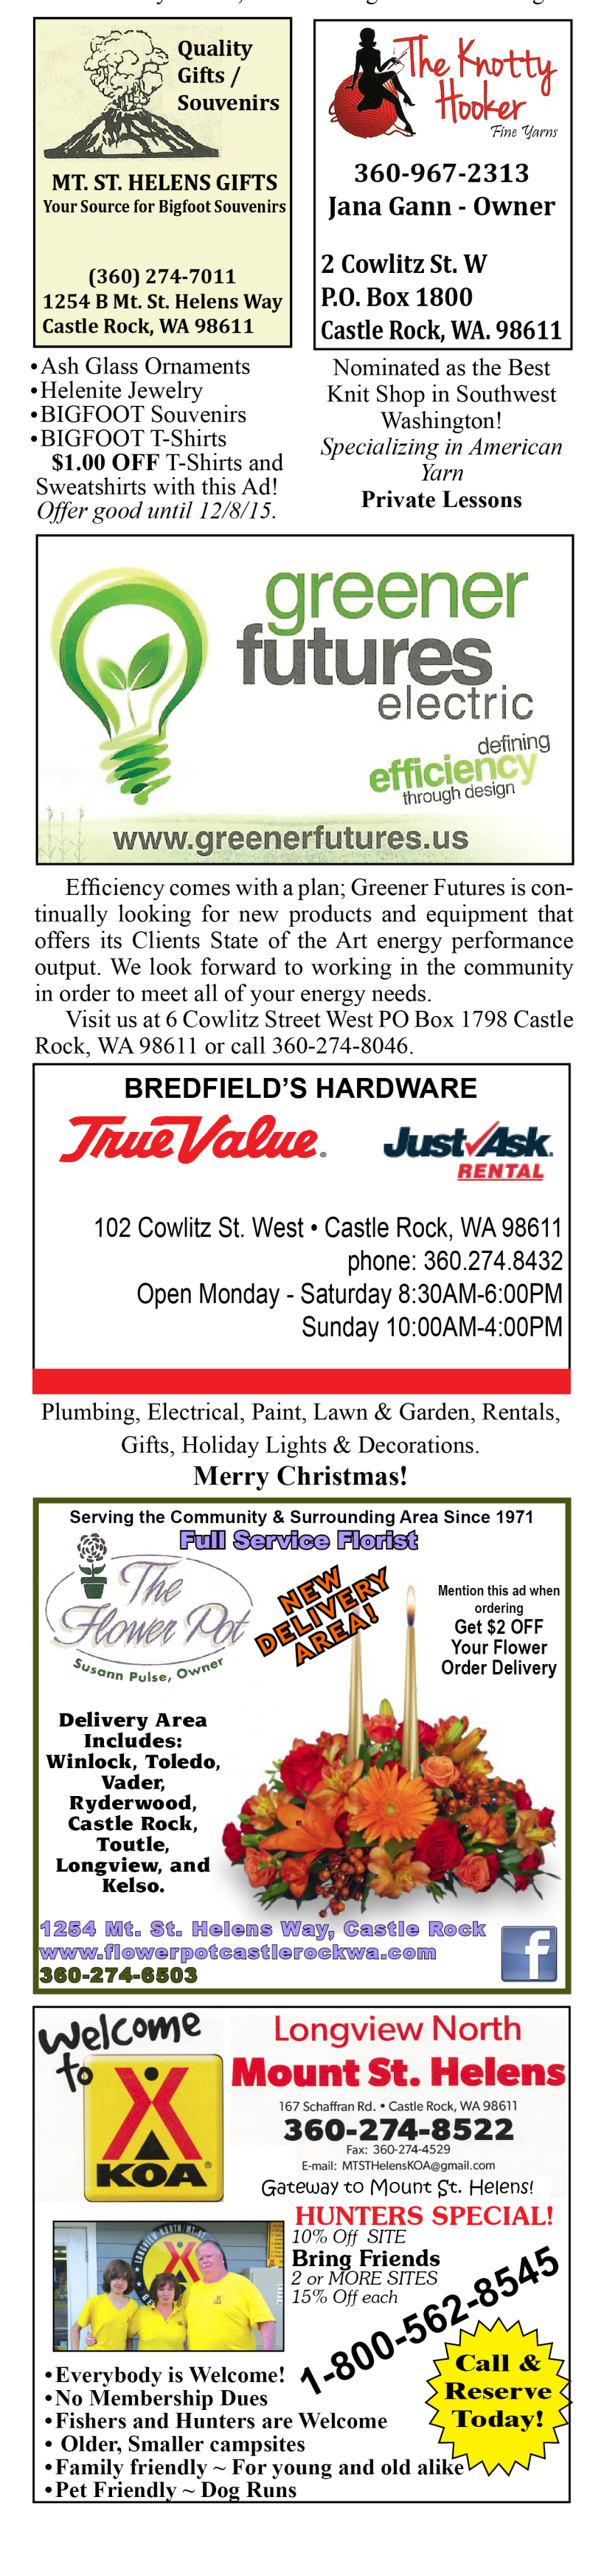 Light Up Castle Rock on Small Business Saturday